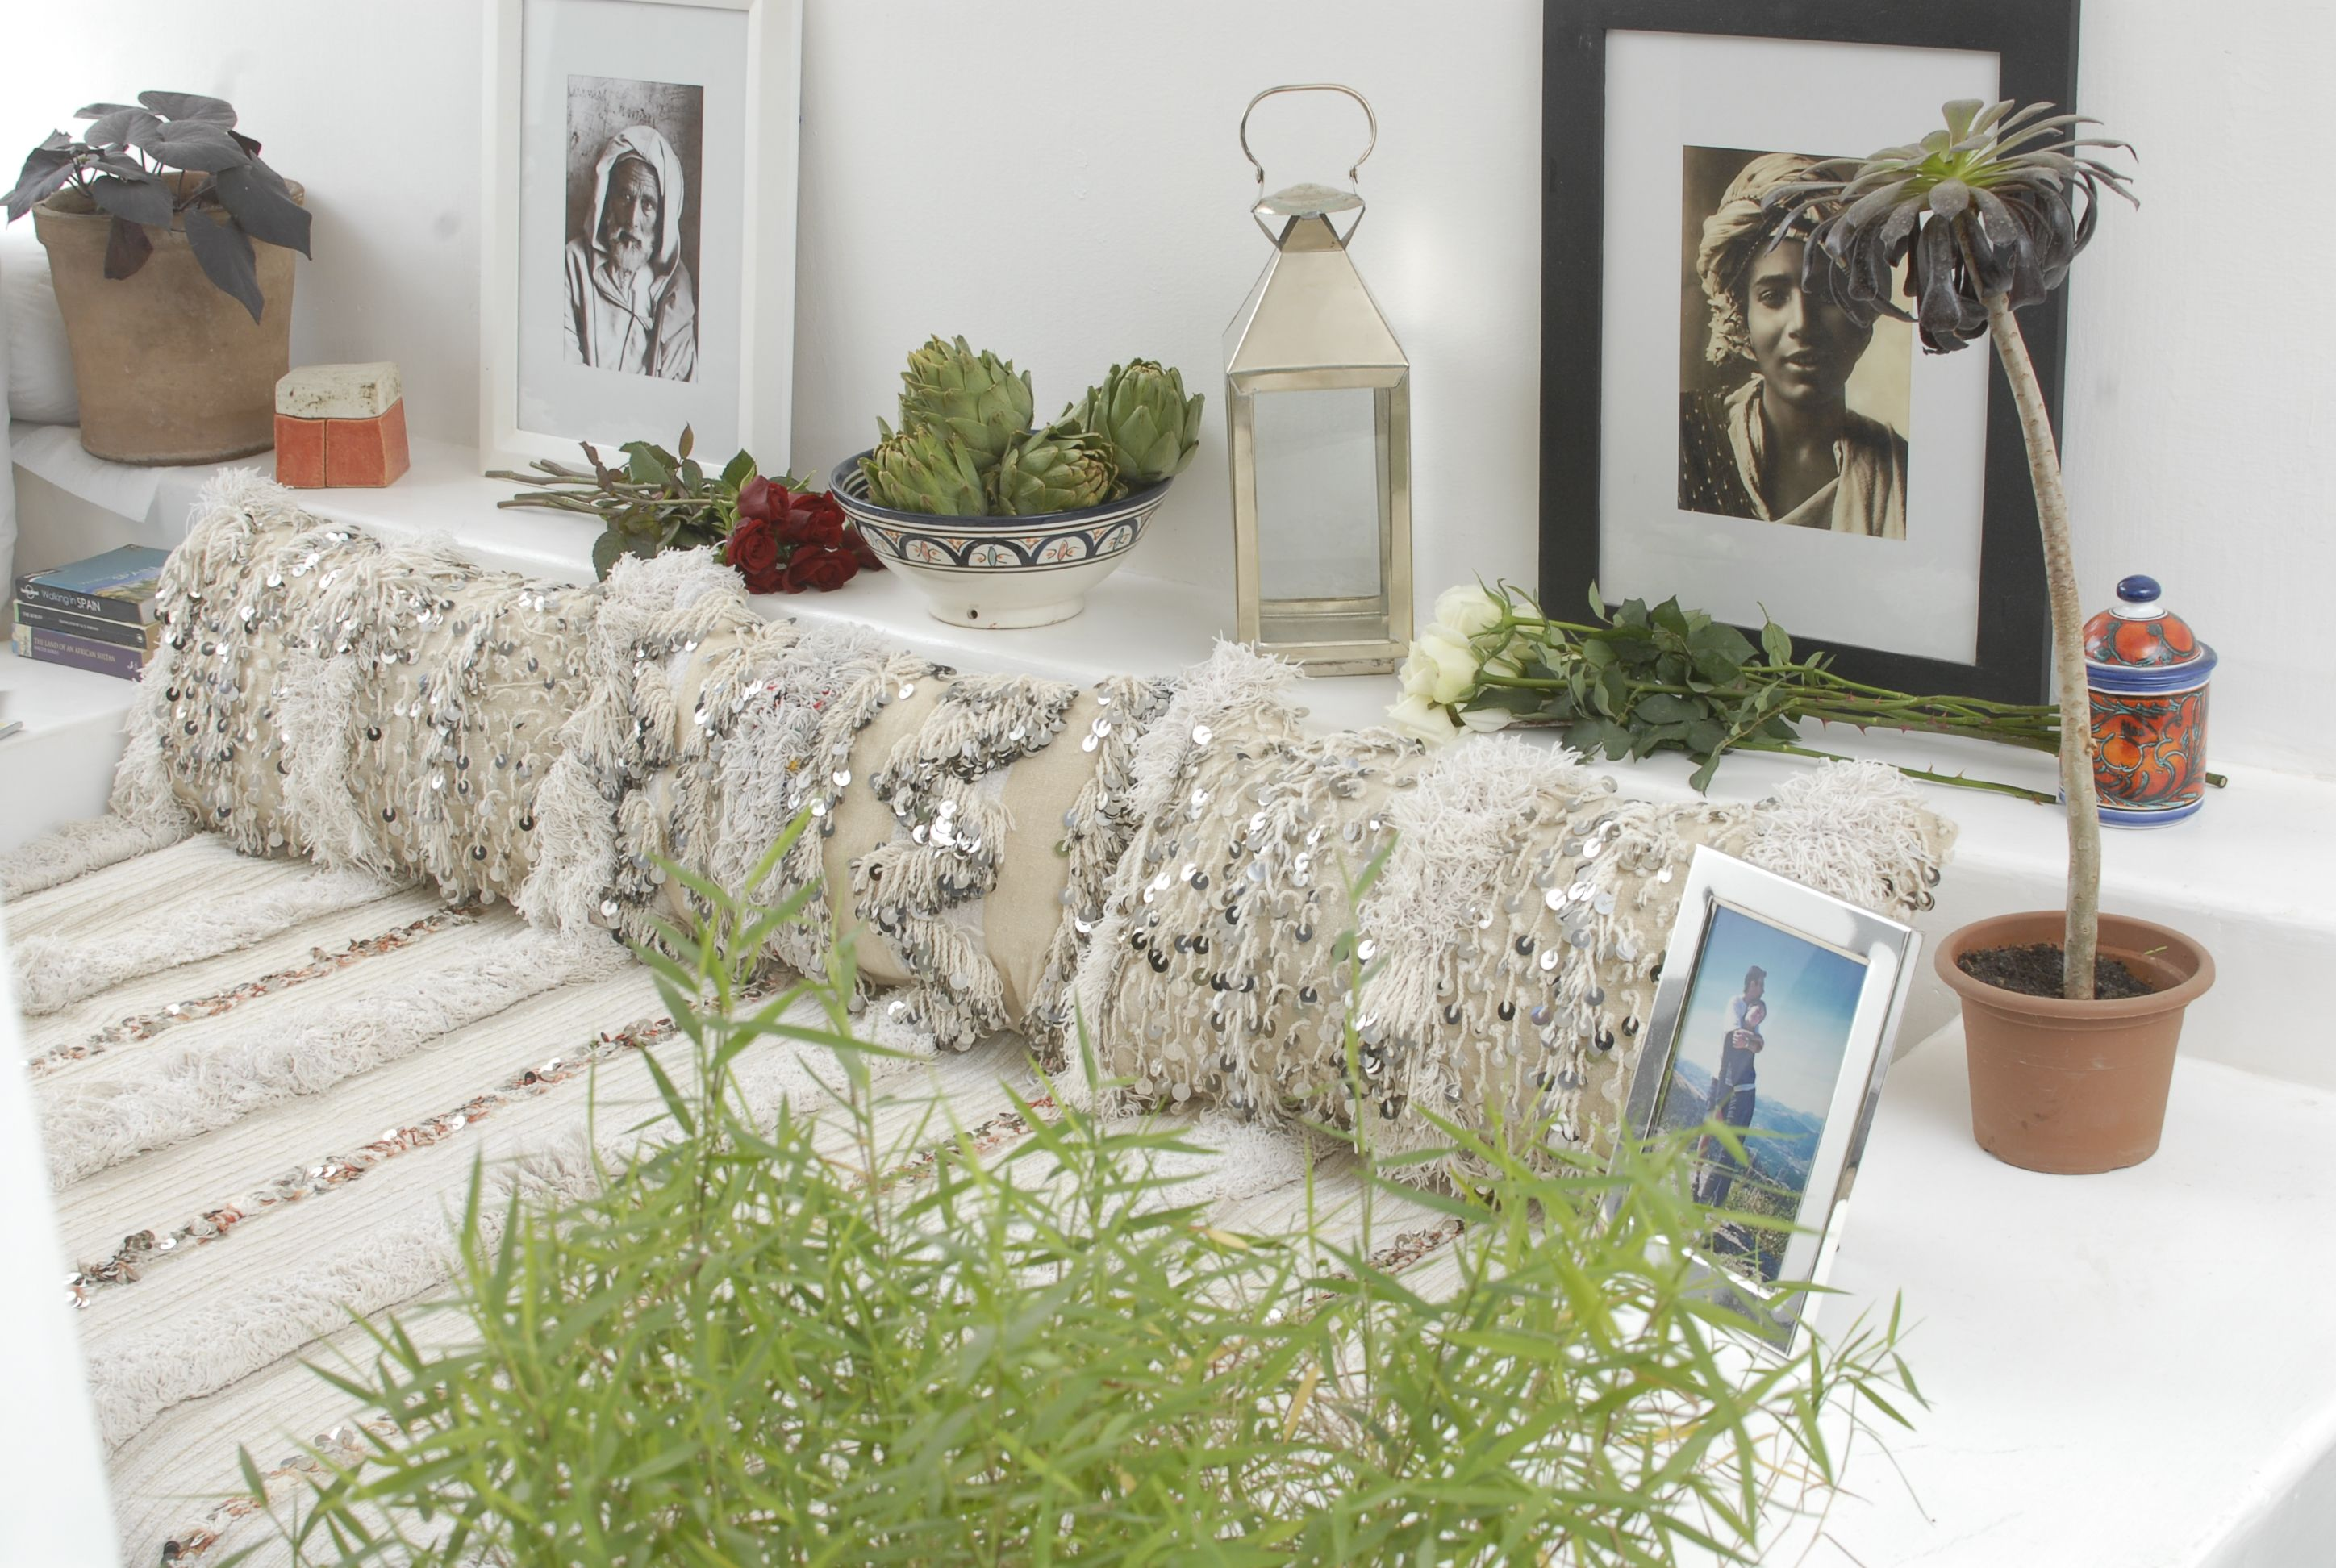 Glamorous Moroccan Wedding Blankets Large Selection Now Available At Our Online